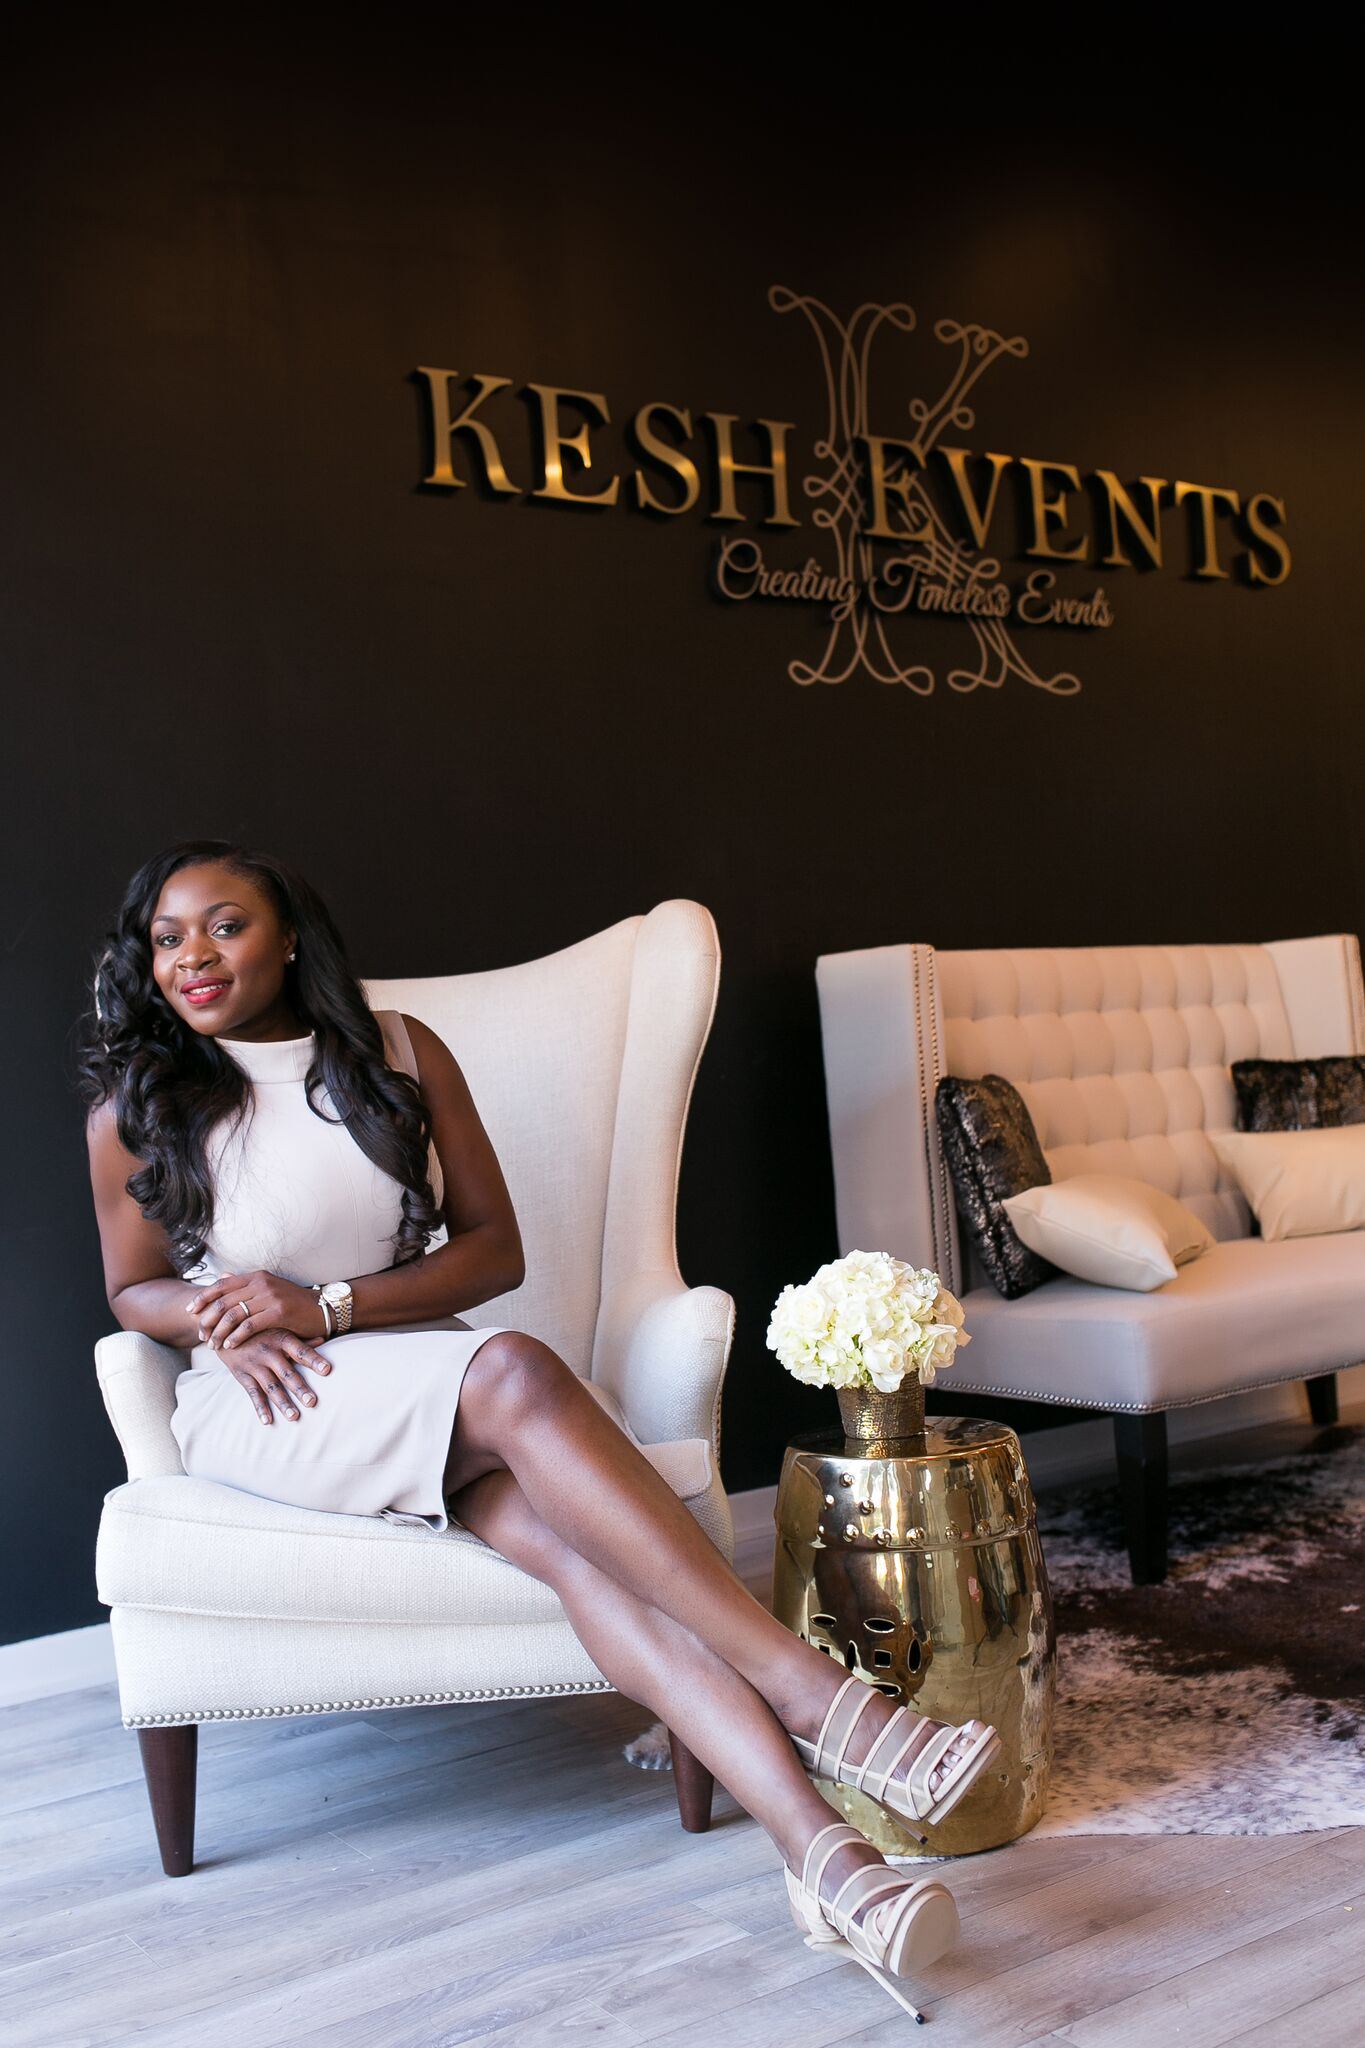 akeshi-akinseye_kesh-events_the-art-of-floral-and-event-design-10